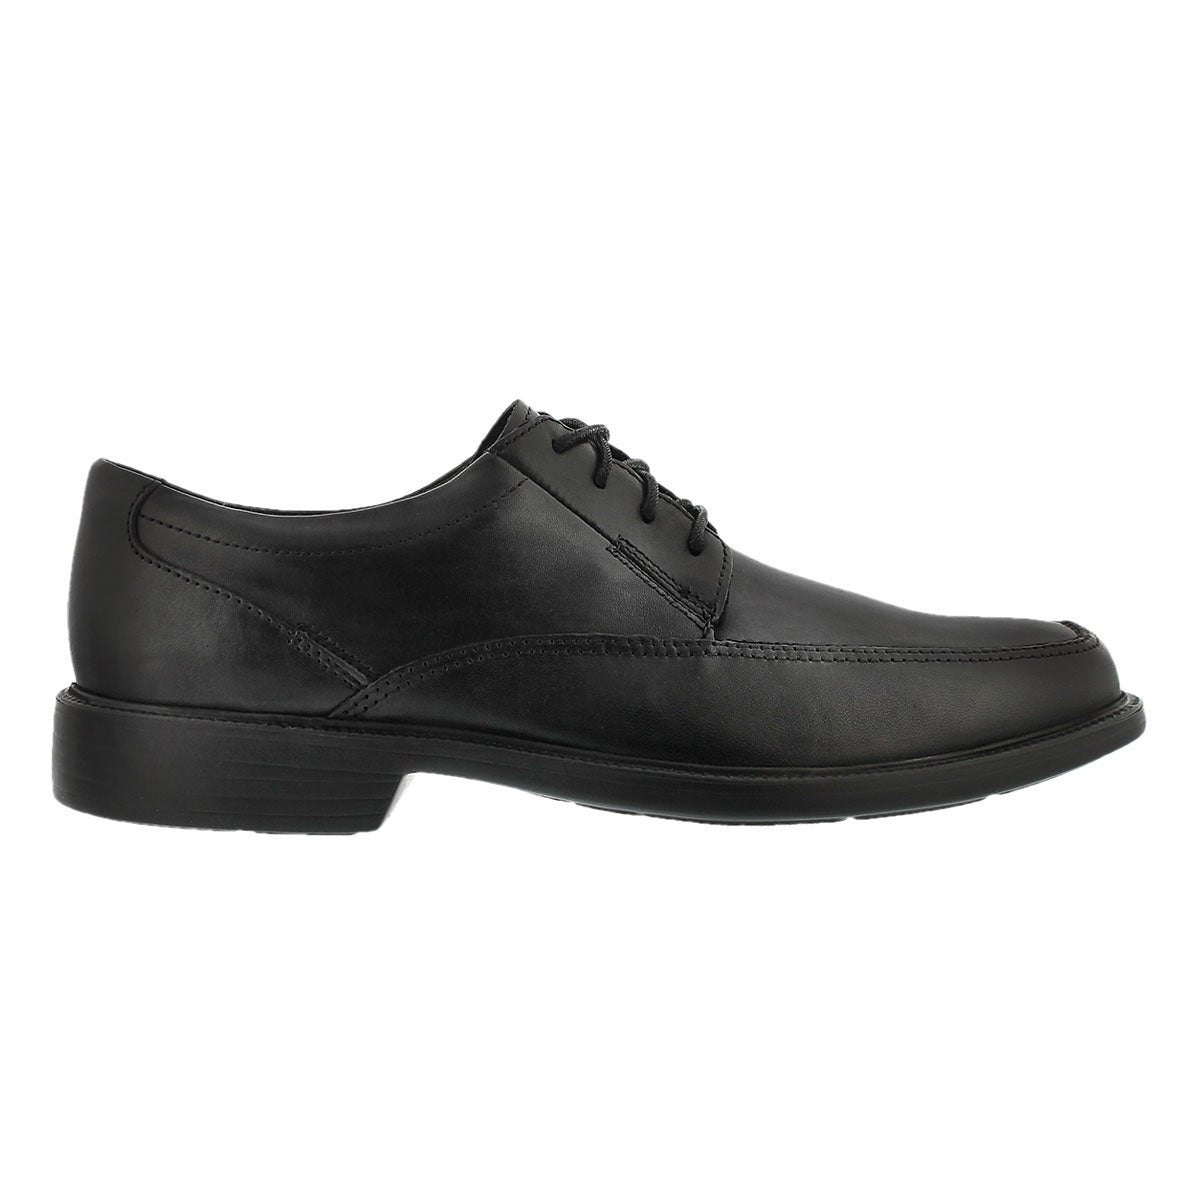 Mns Ipswitch black dress oxford